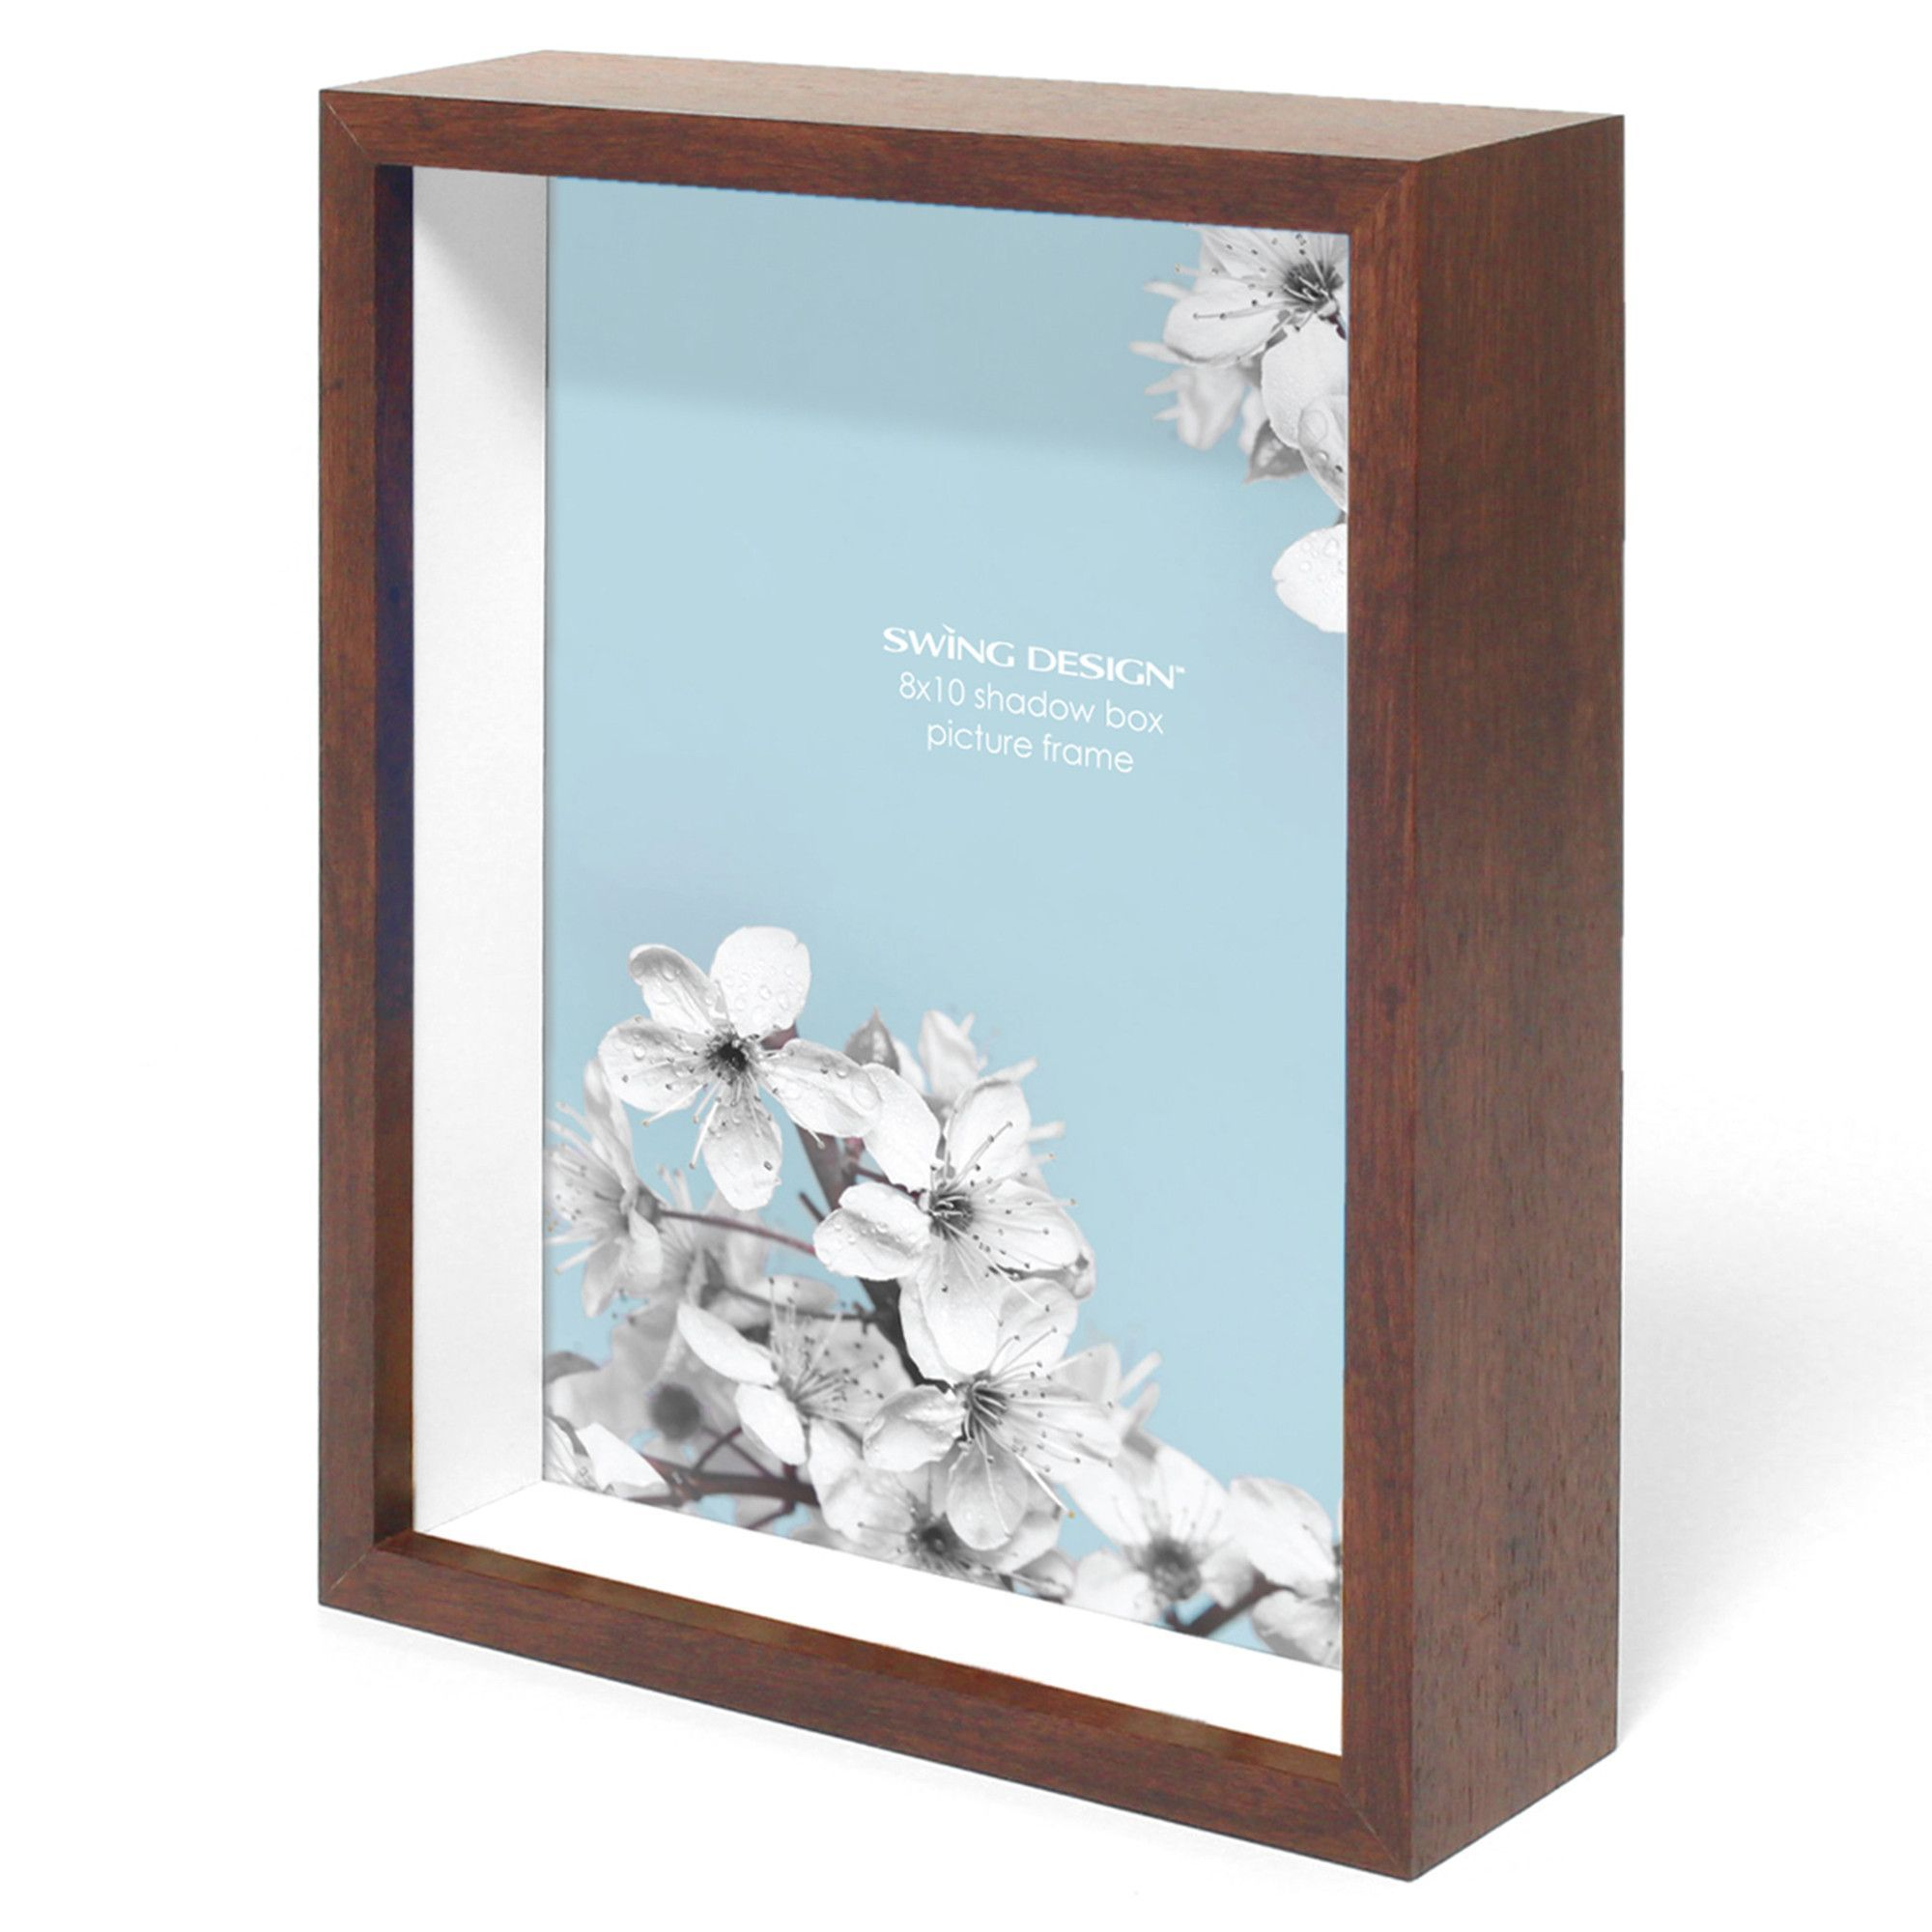 Best shadow box ideas pictures decor and remodel shadow box